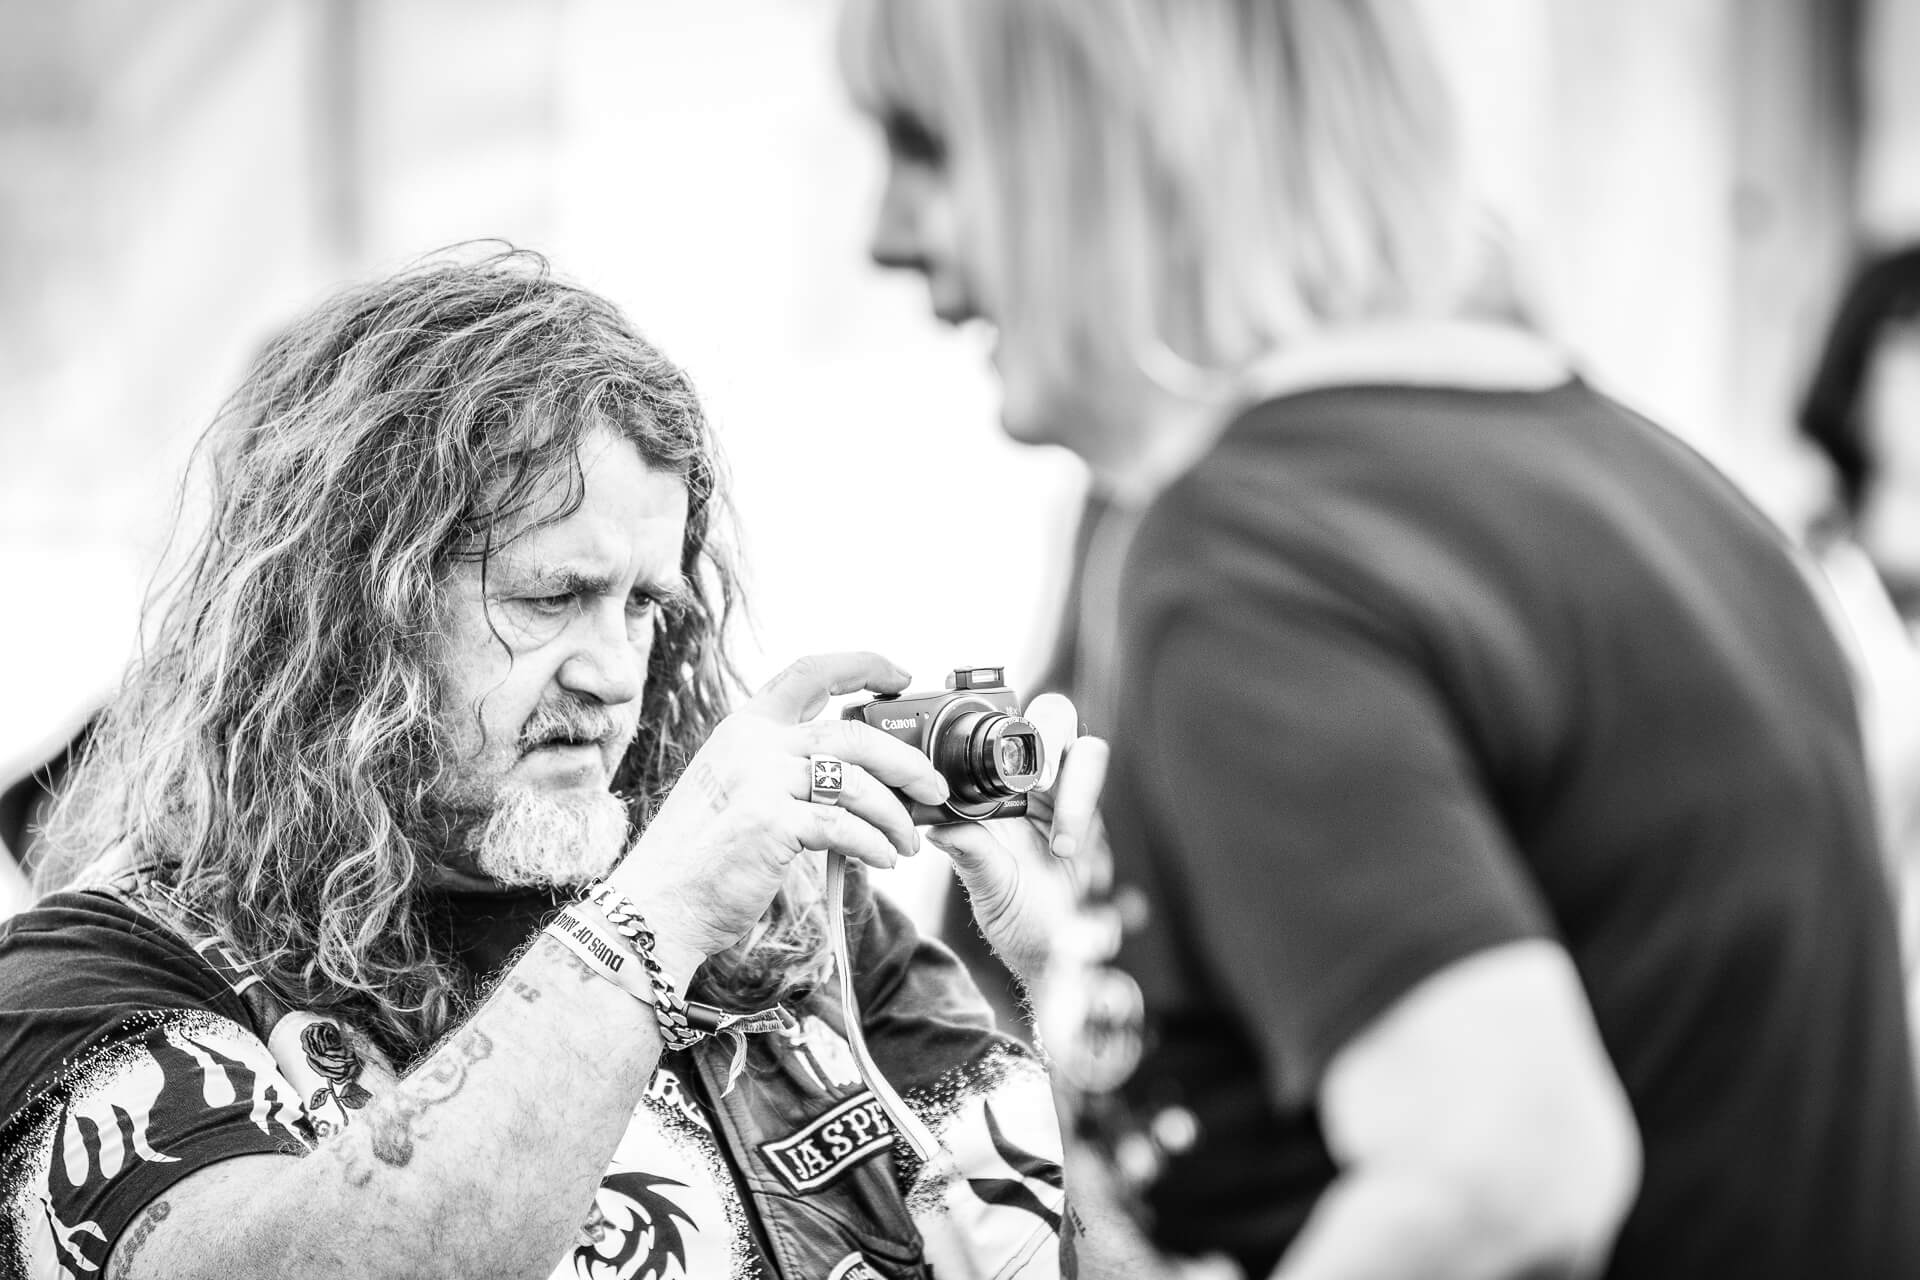 A head & chest image, in black & white of a long haired male festival goer at Dubs of Anarchy Festival. He appears to be concentrating on the view through the viewfinder of a small Canon Compact camera.